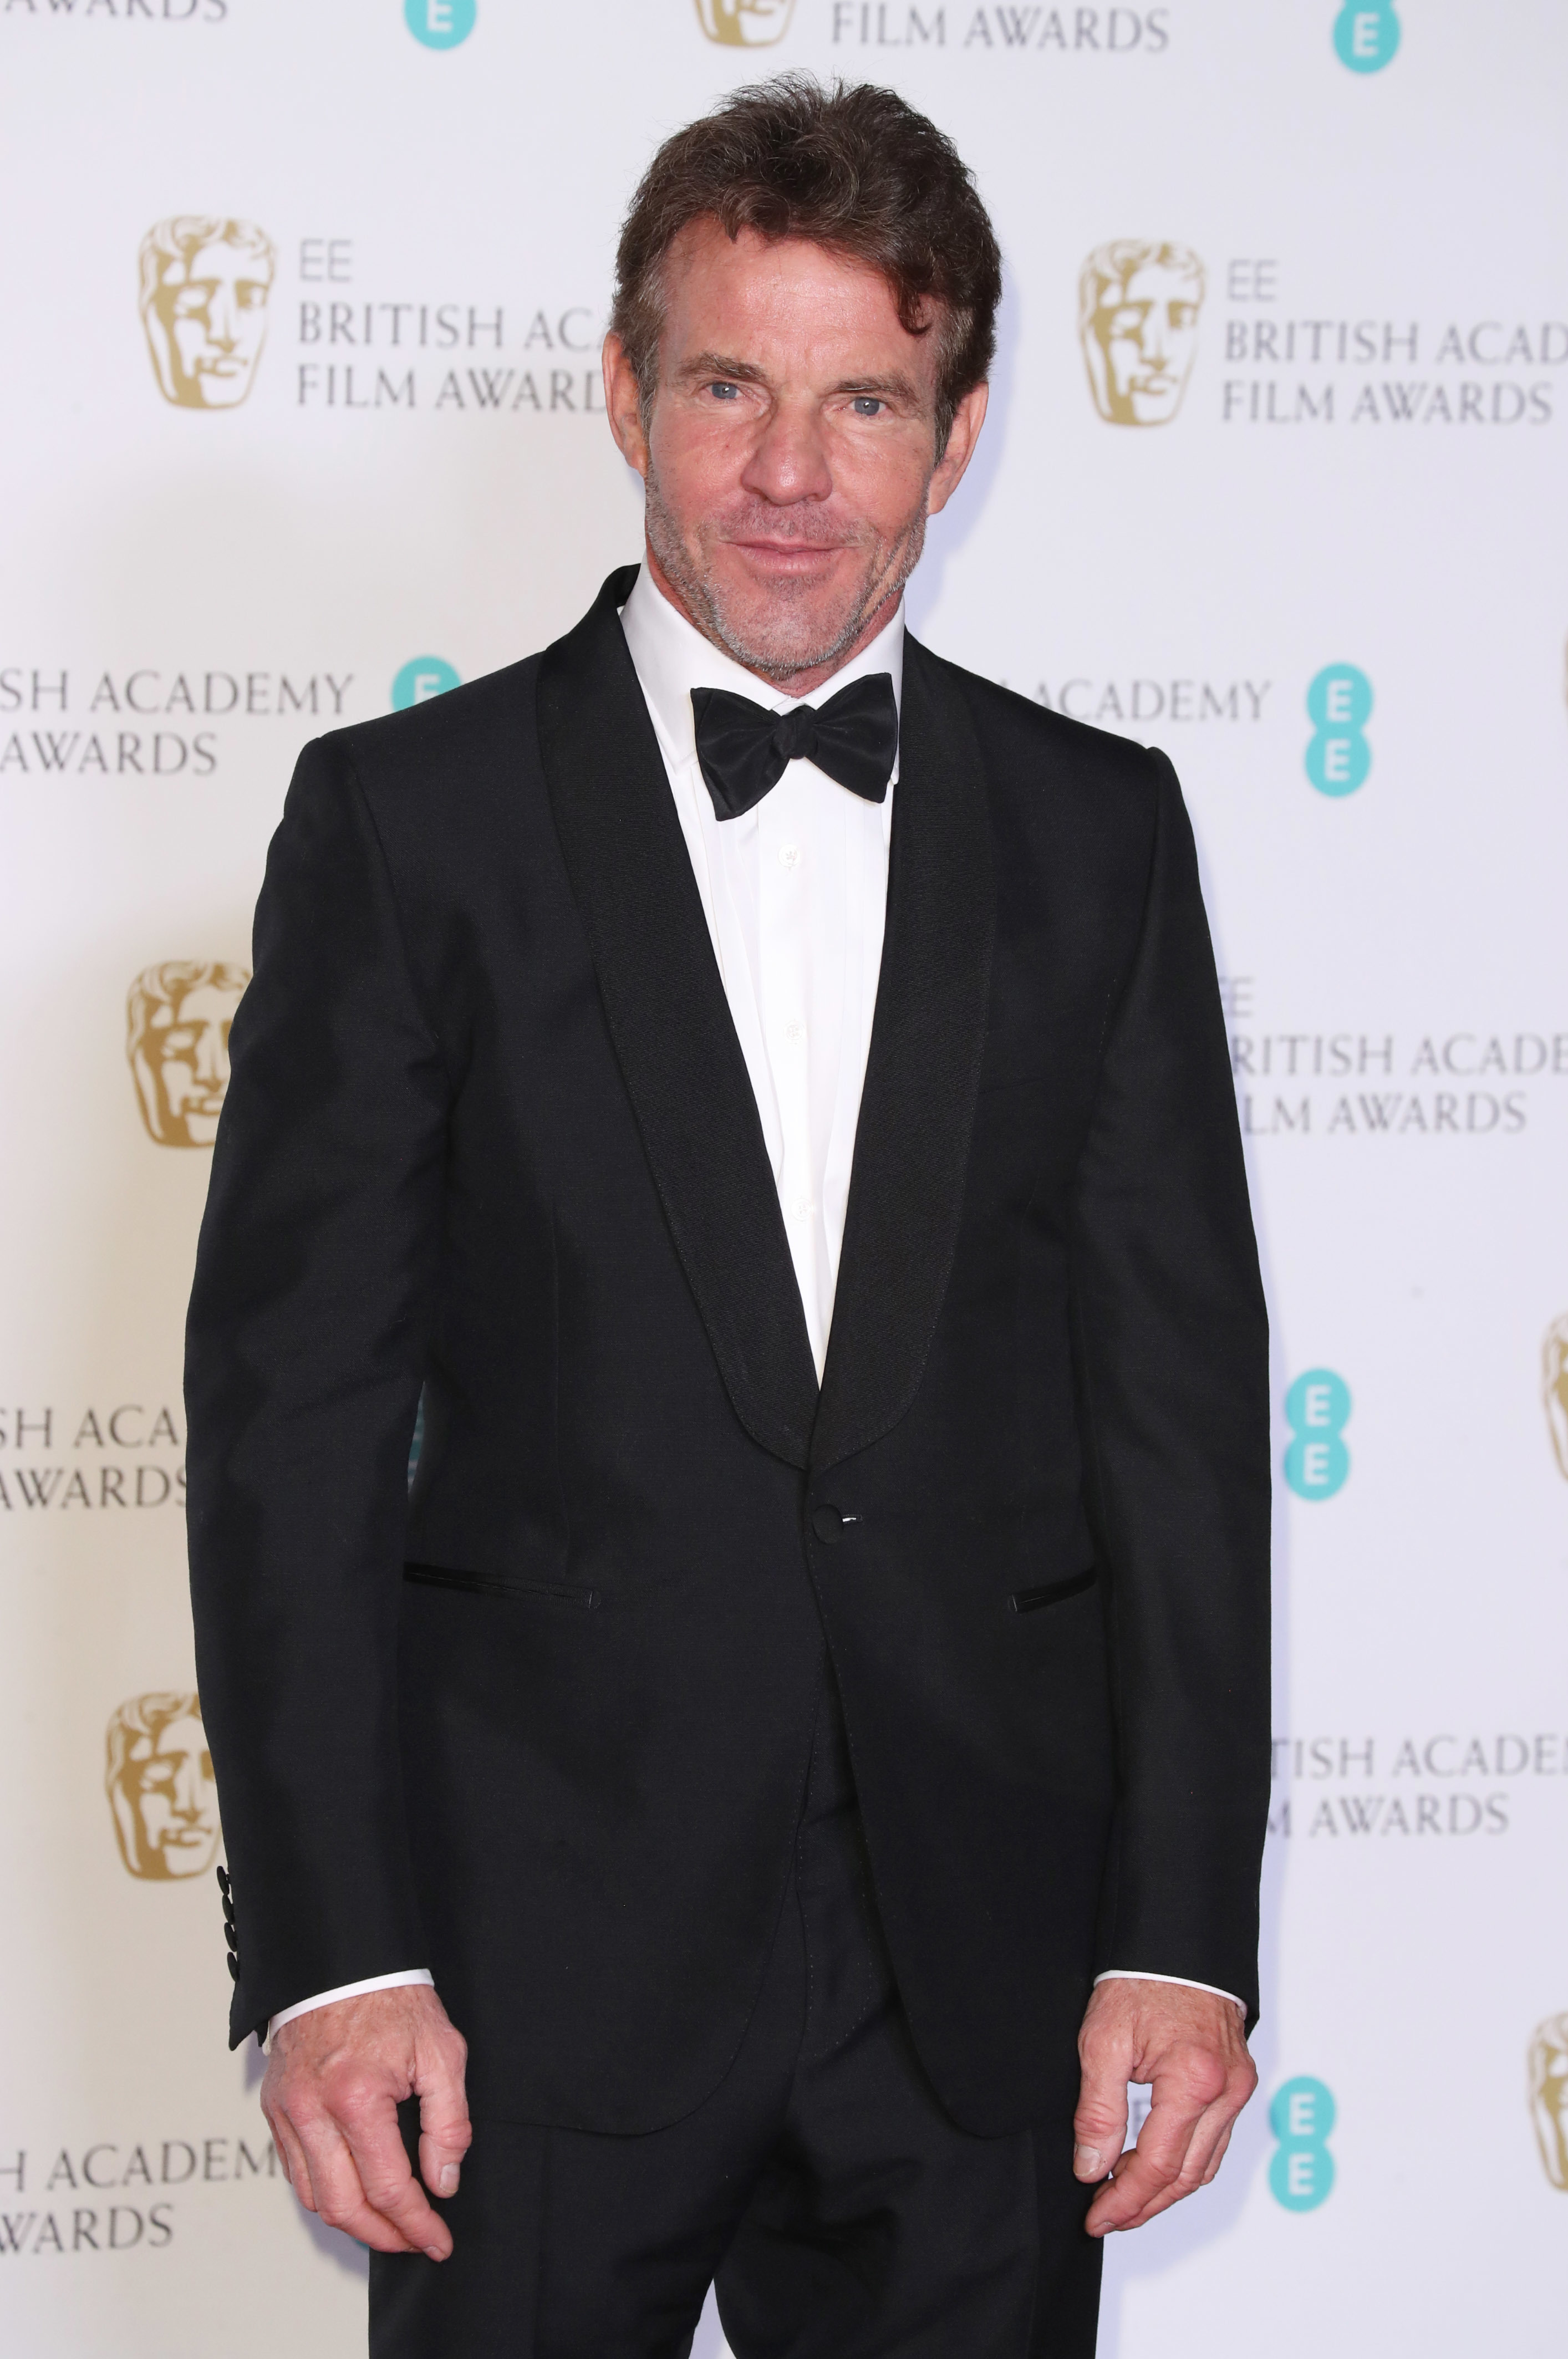 Dennis Quaid attends the 71st British Academy Film Awards in London on Feb. 18, 2018.